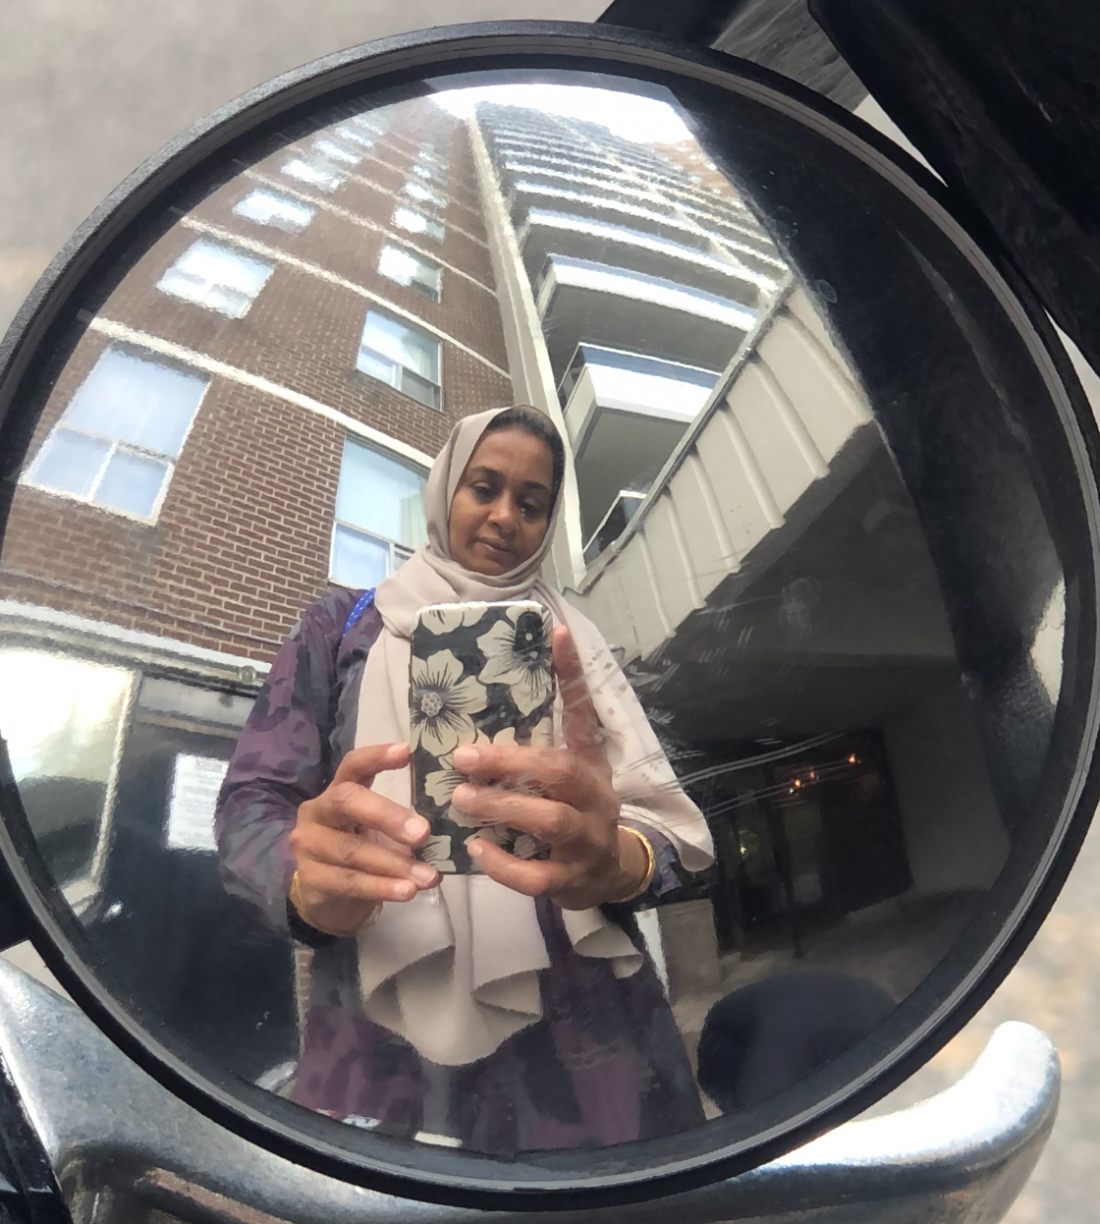 Woman takes a picture of herself in her bikes mirror